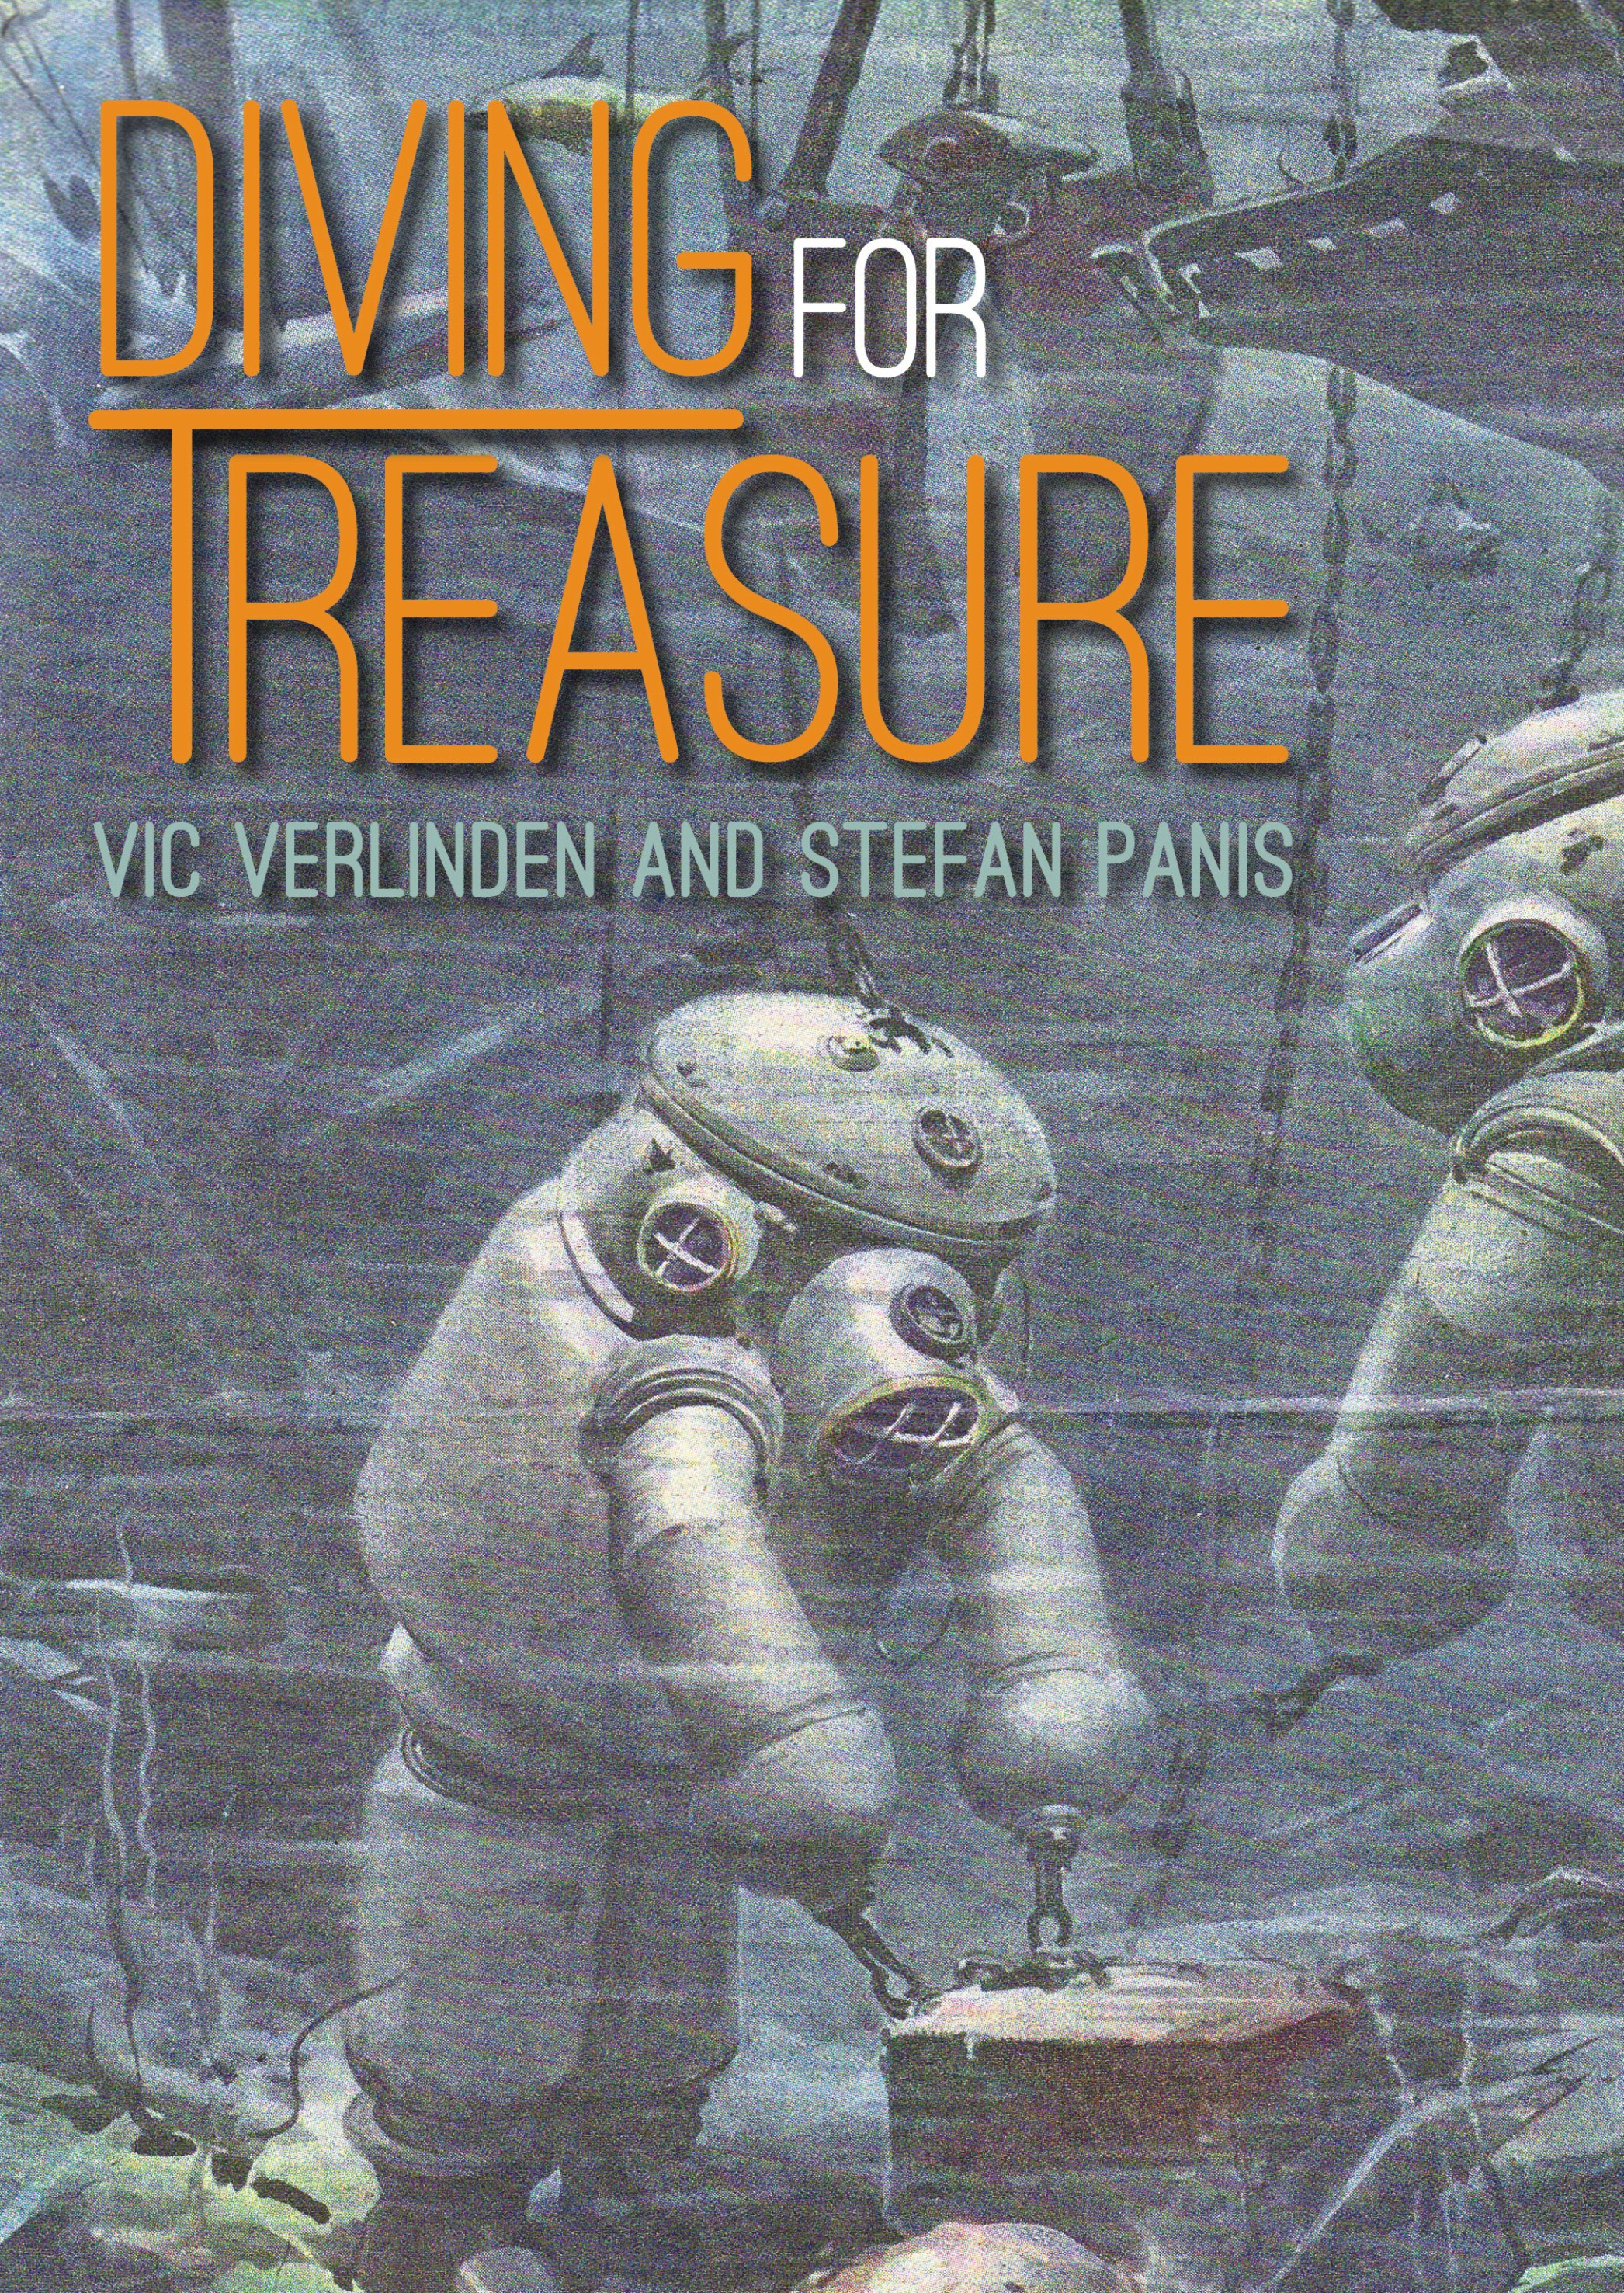 'Diving For Treasure' Shipwreck Book, by Vic Verlinden and Stefan Panis, Due Out This Month